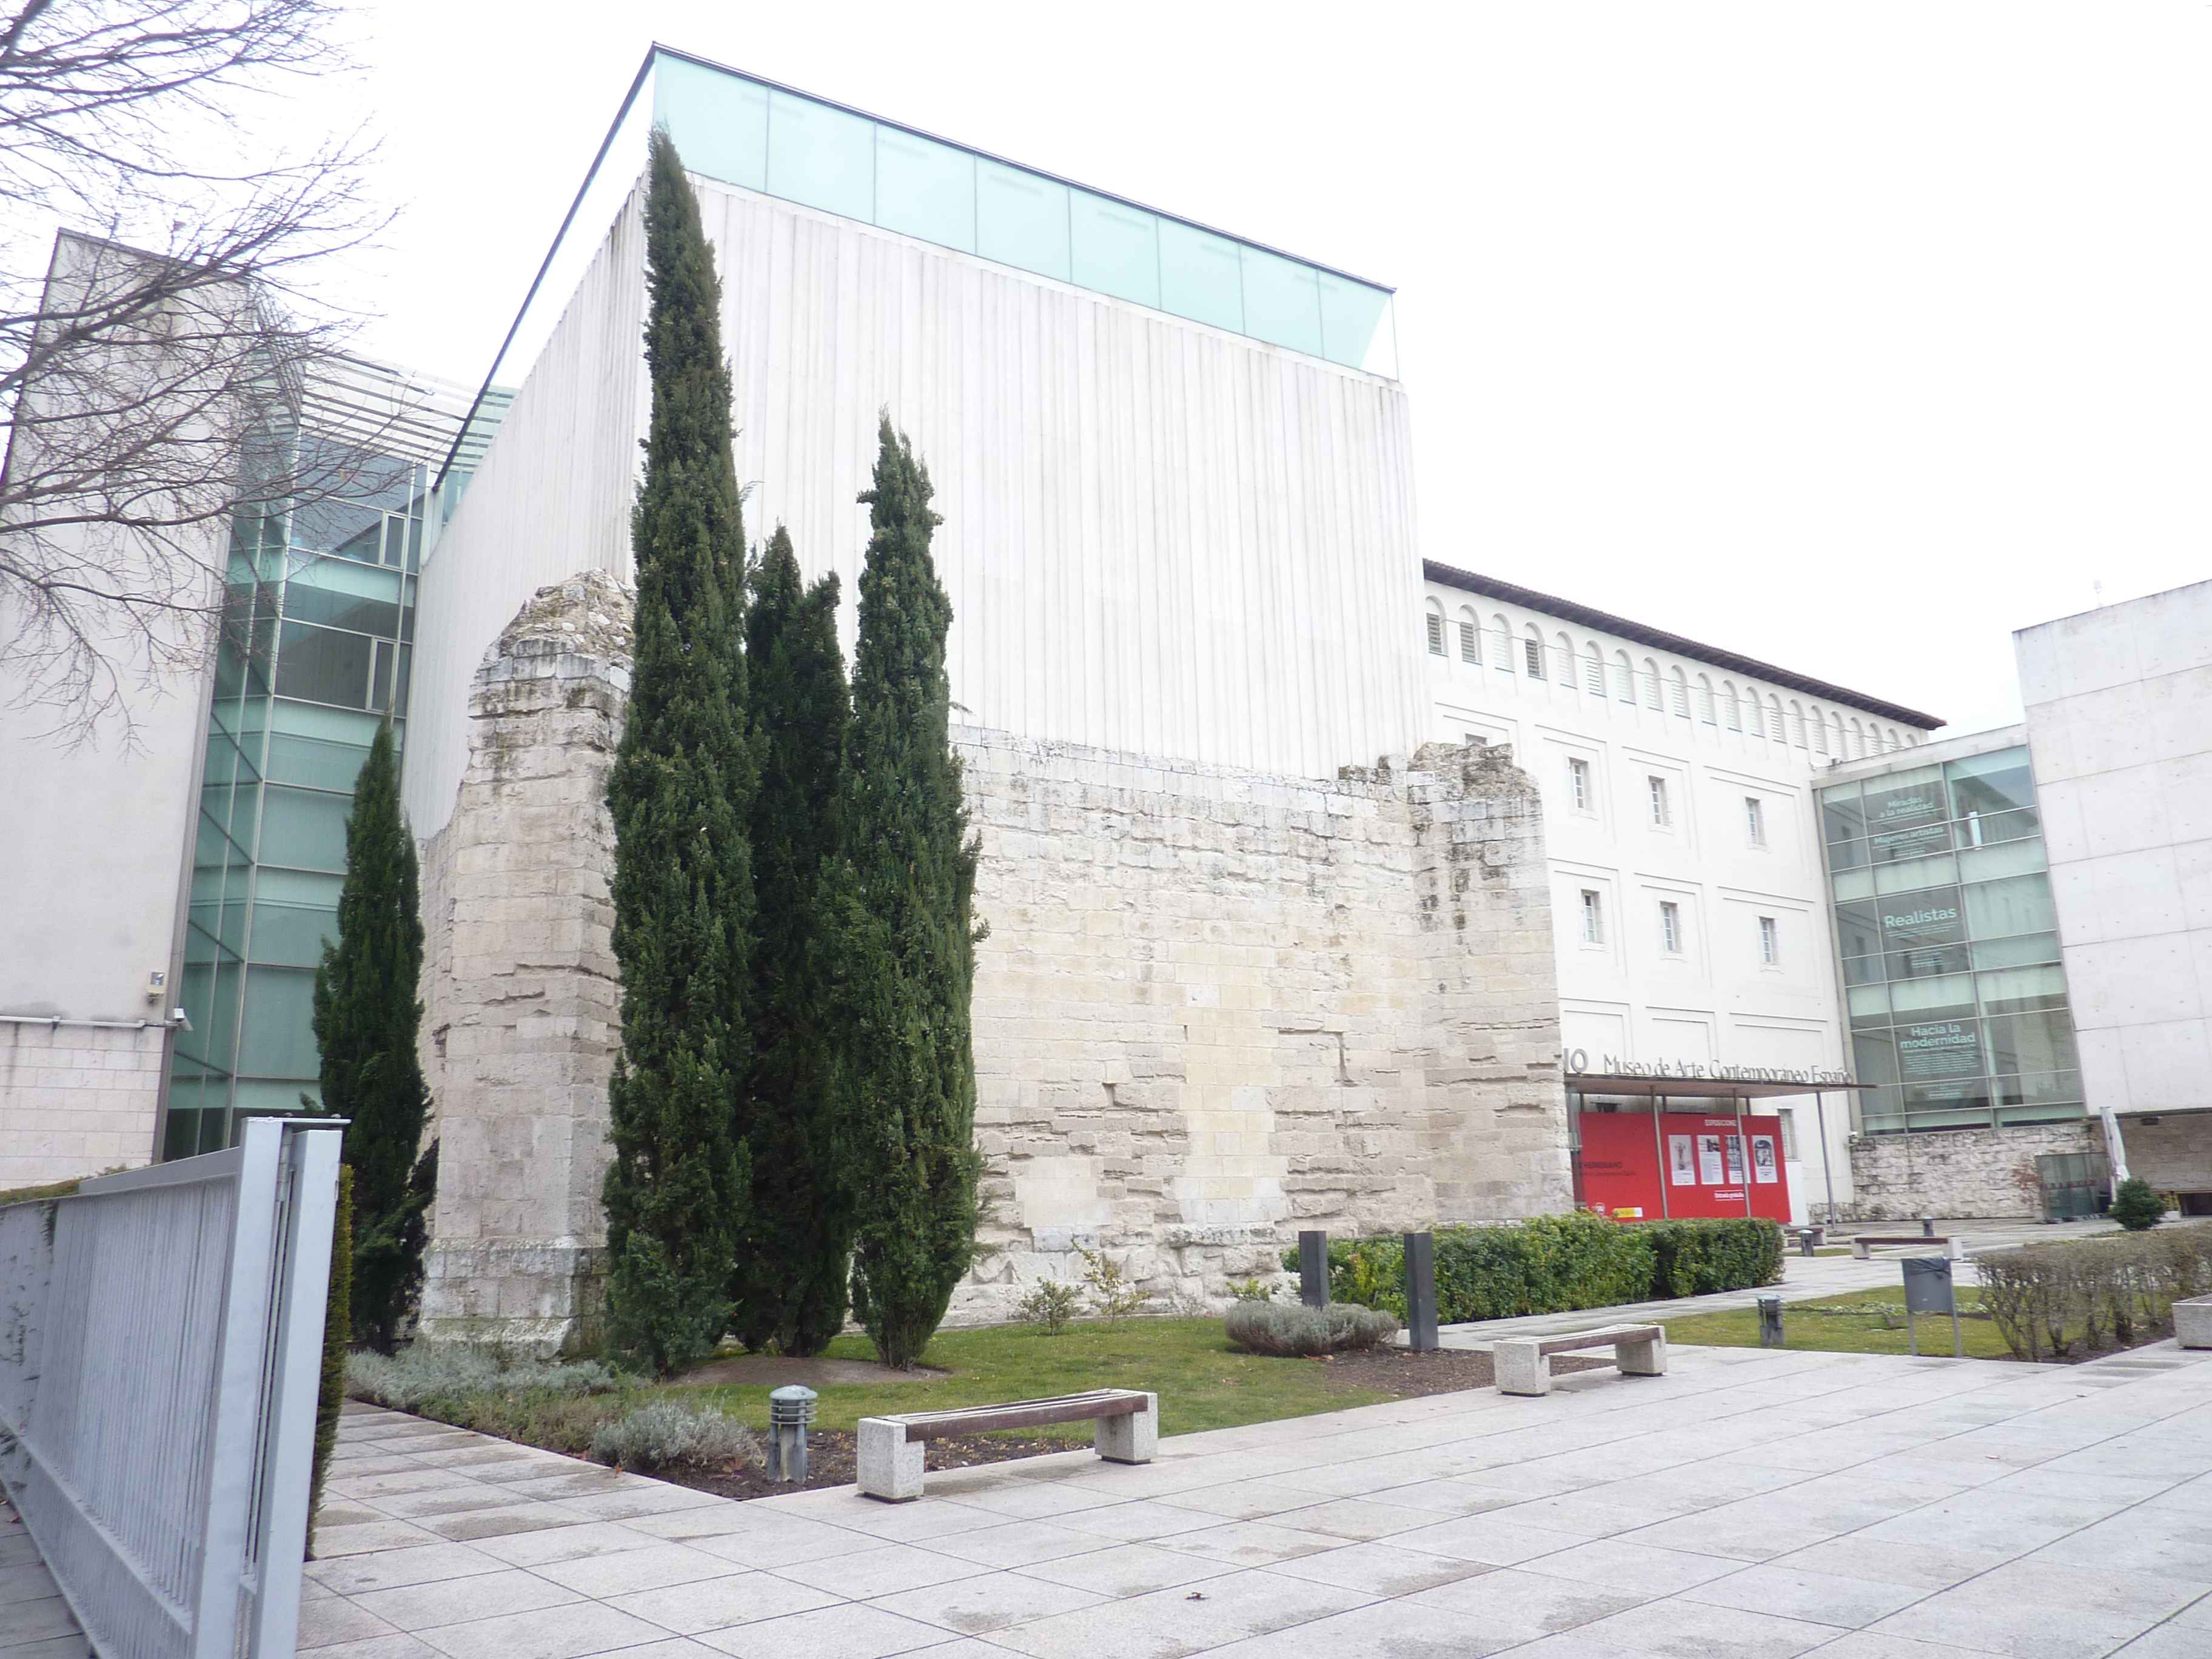 Musee Des Arts Contemporains De Valladolid en Images